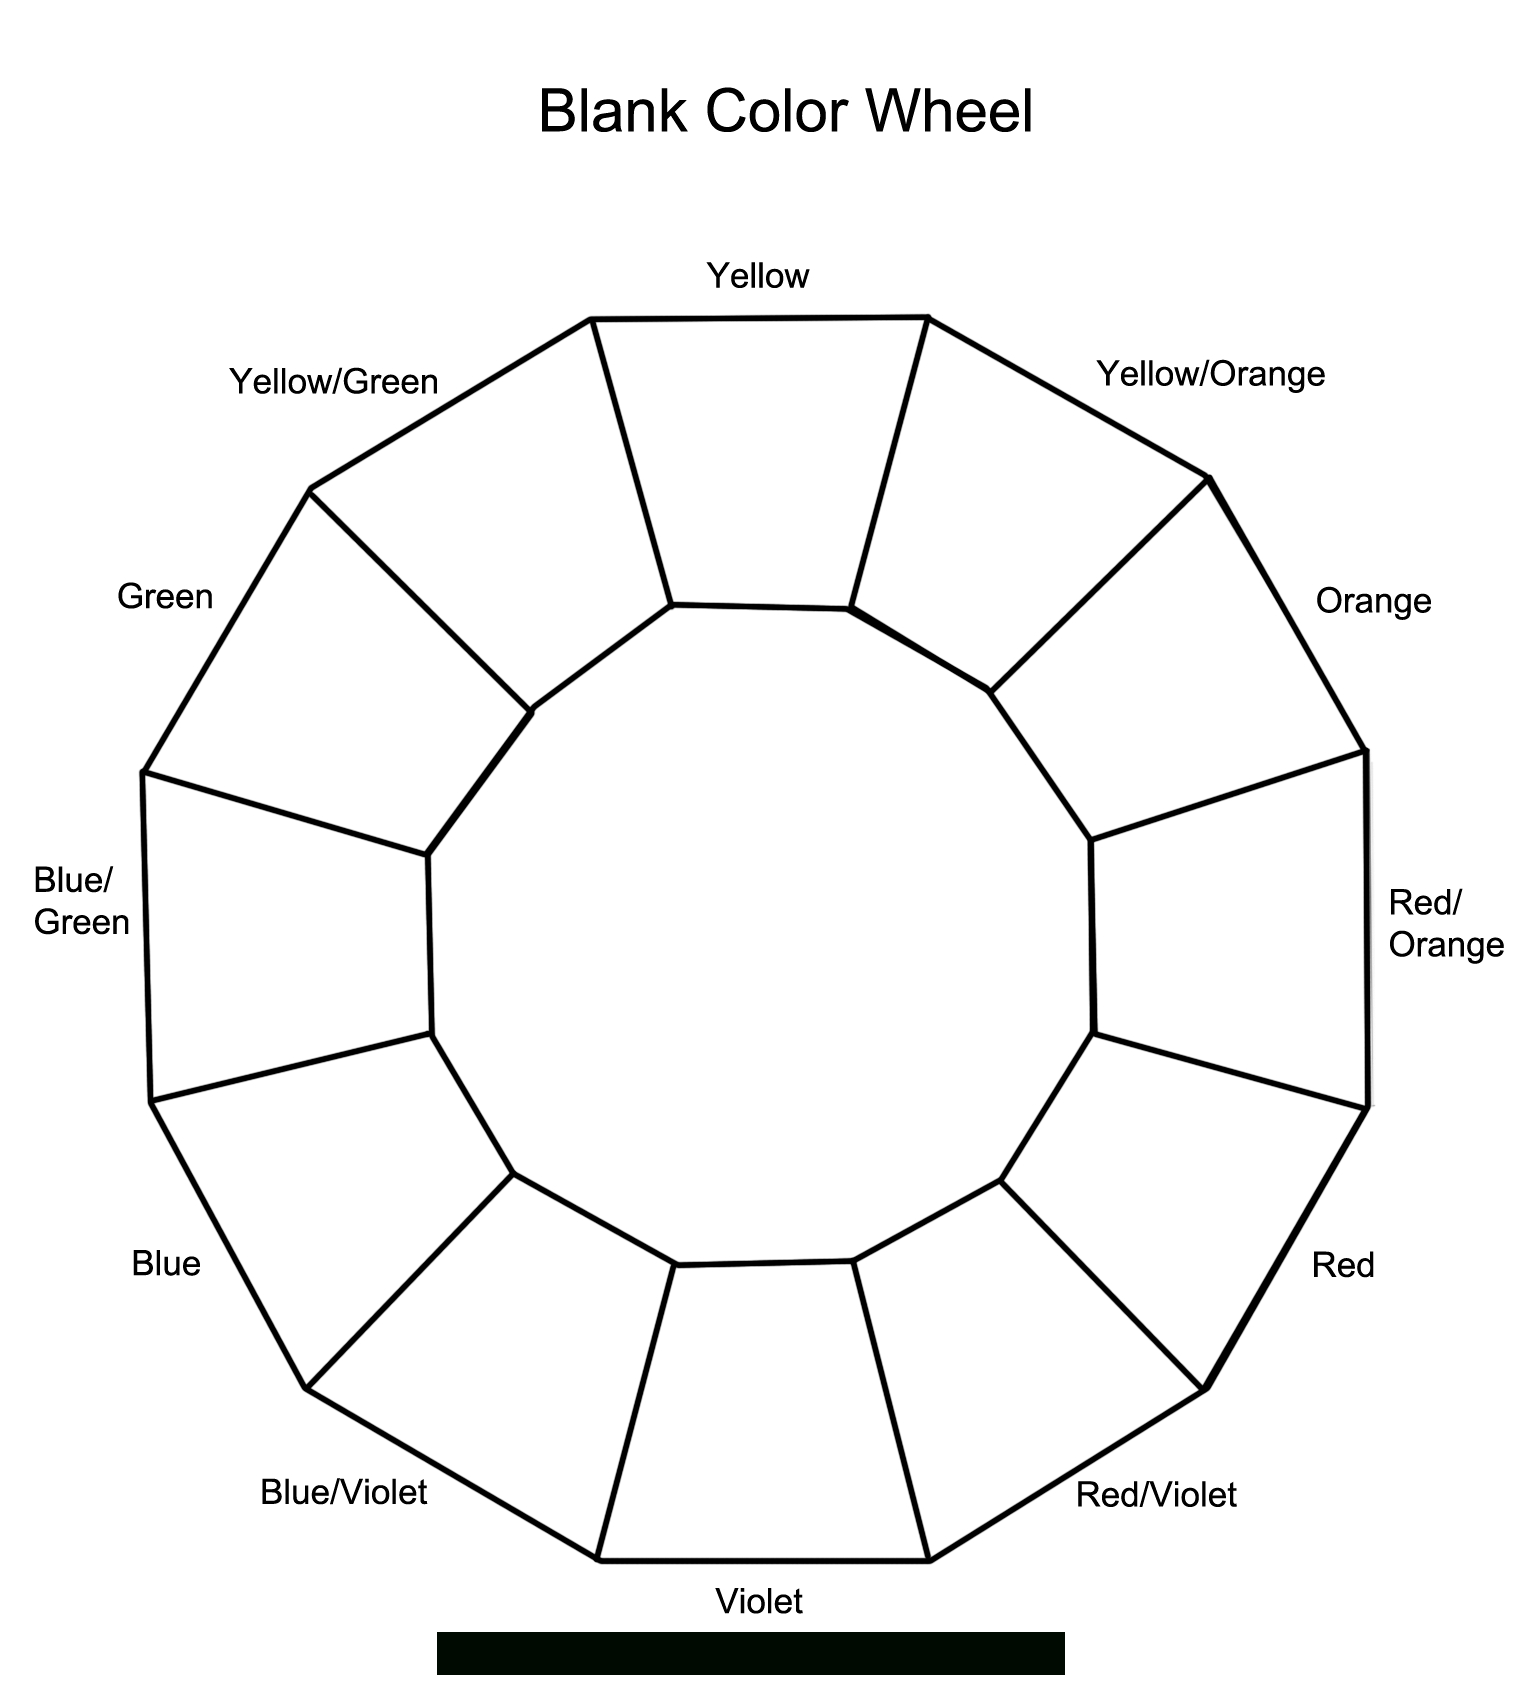 Section Colour Wheel  Free Pictures  Painting In   Color With Regard To Blank Color Wheel Template